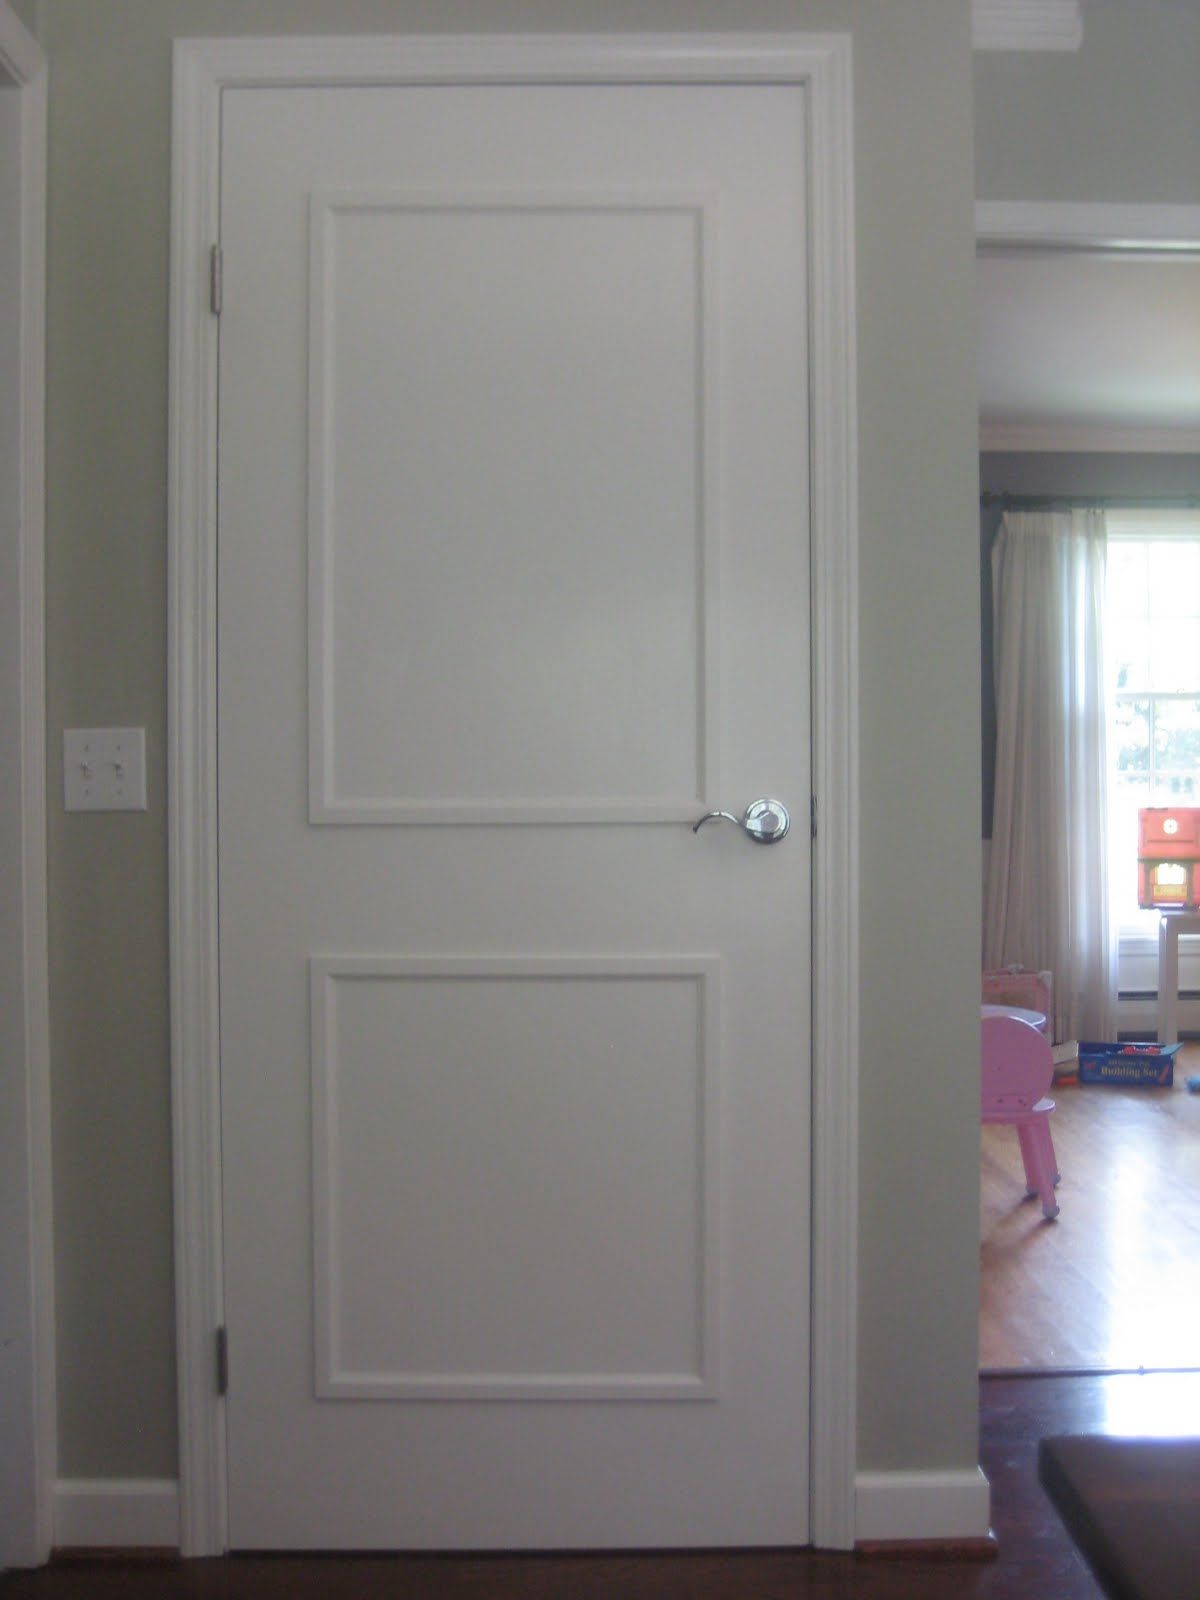 Adding Molding To Flat Panel Doors A Great Way To Update